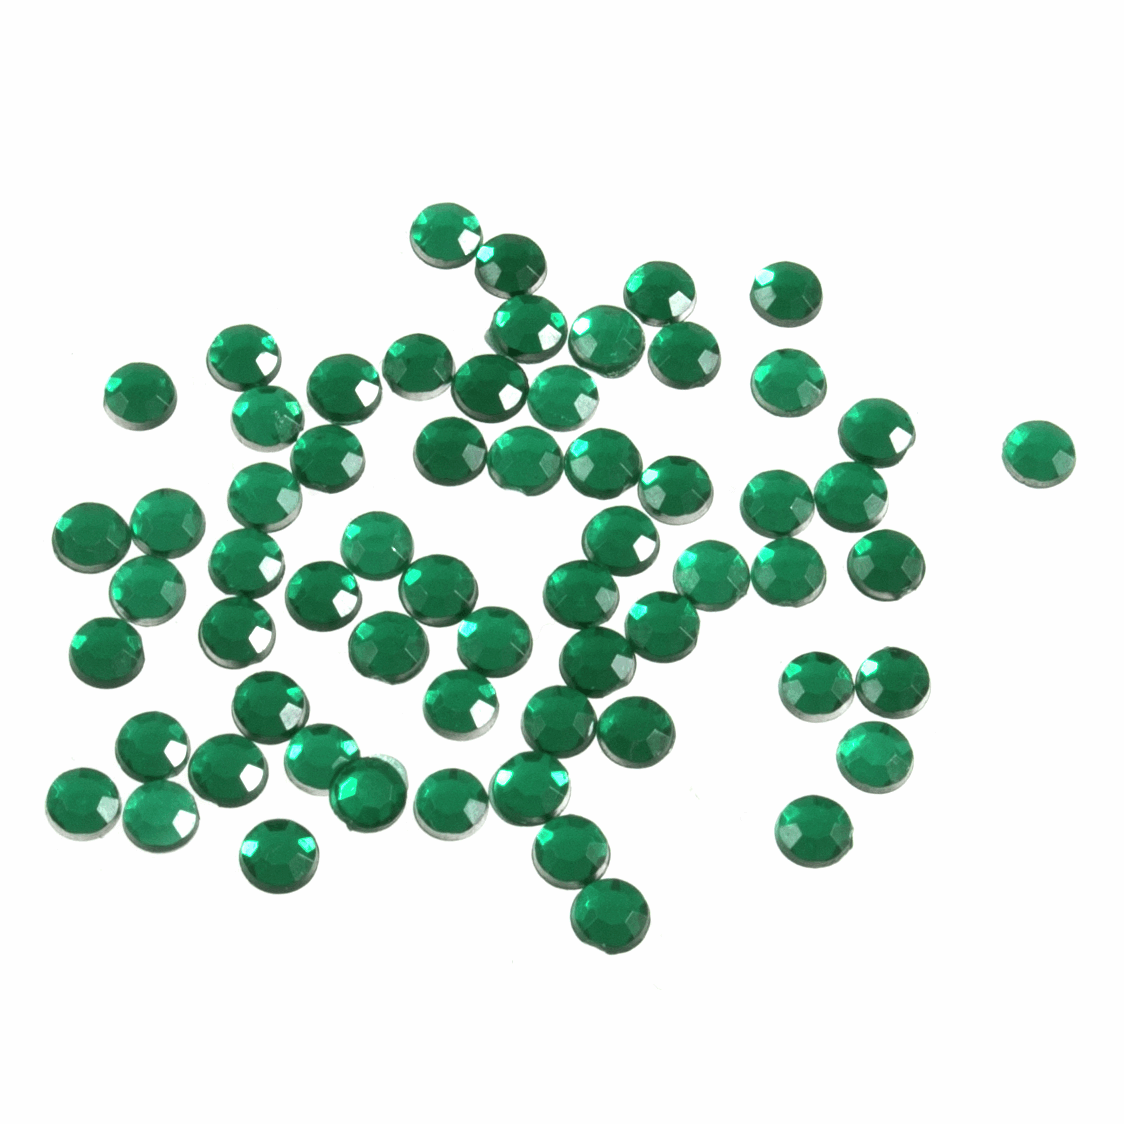 Picture of Acrylic Stones: Glue-On: Round: Small-4mm: Green